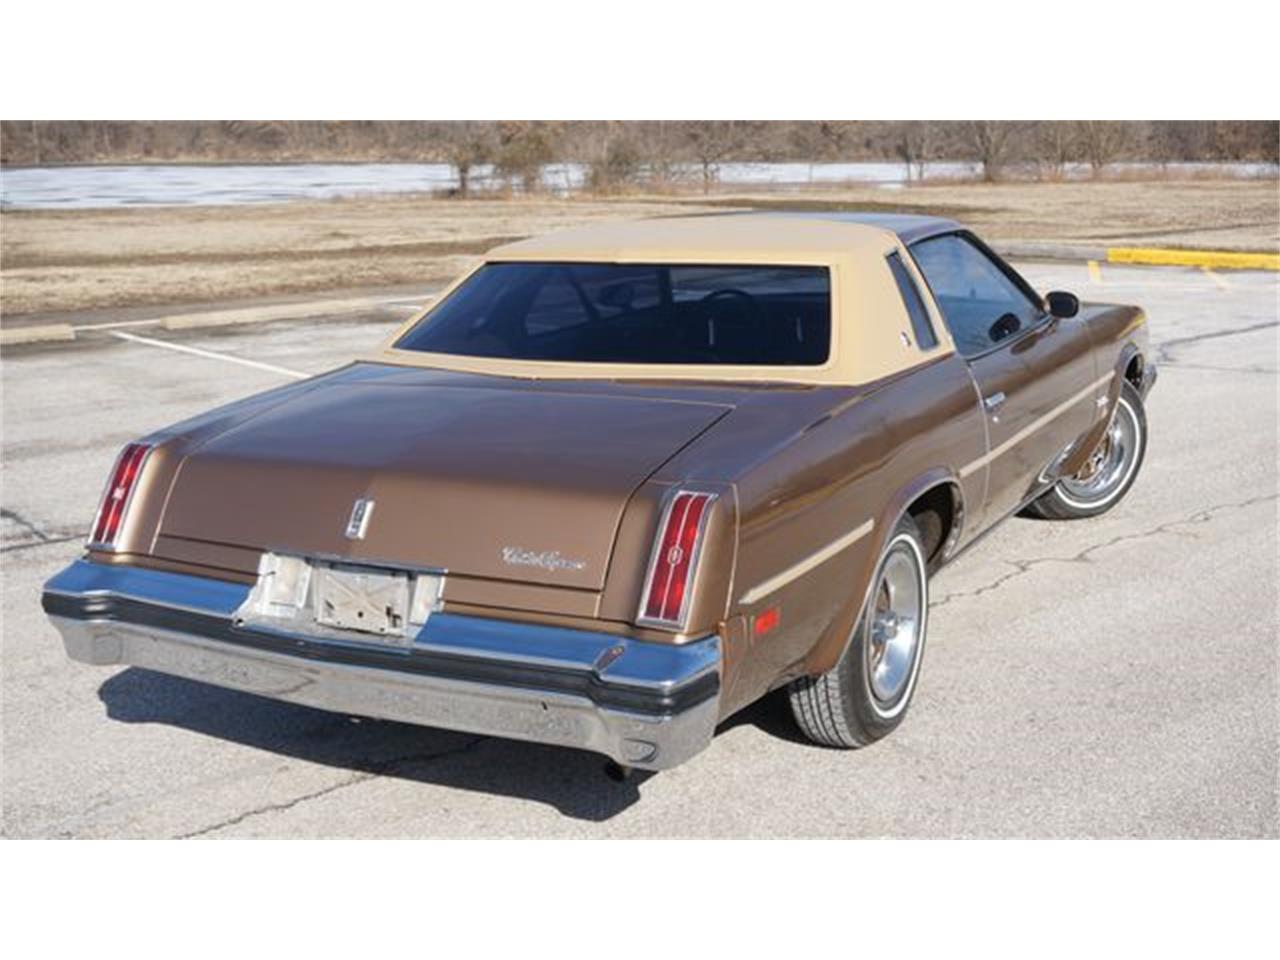 Large Picture of '76 Oldsmobile Cutlass located in Missouri - $9,795.00 - PGQ1